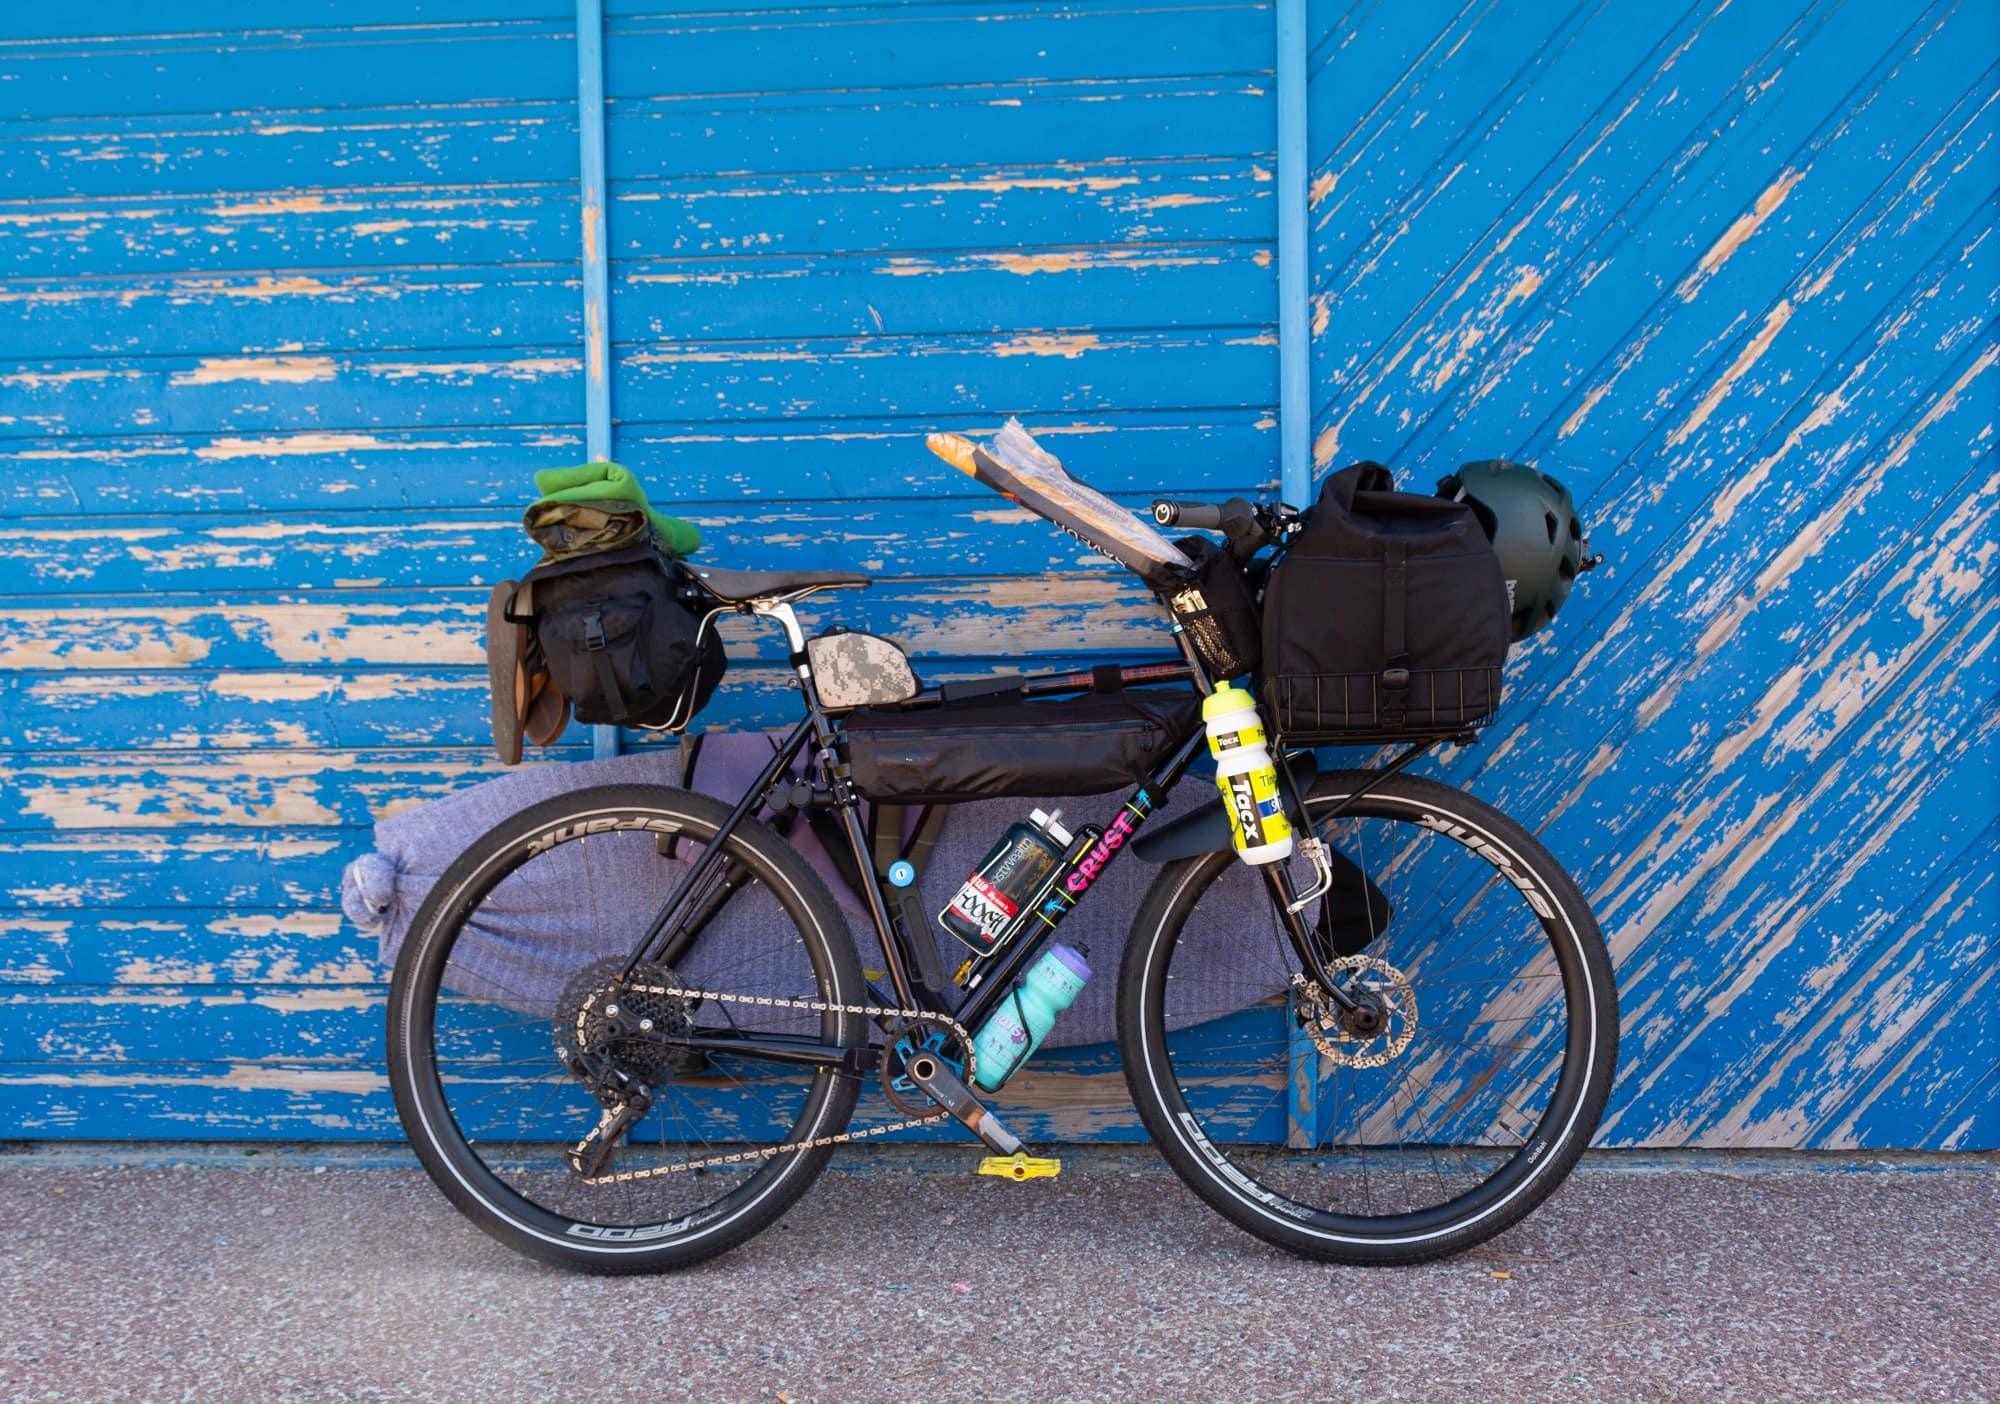 Your guide to bike touring gear so you're prepared for a multi-day bike trip including touring bikes, seats, panniers, clothing, camping gear, and more.